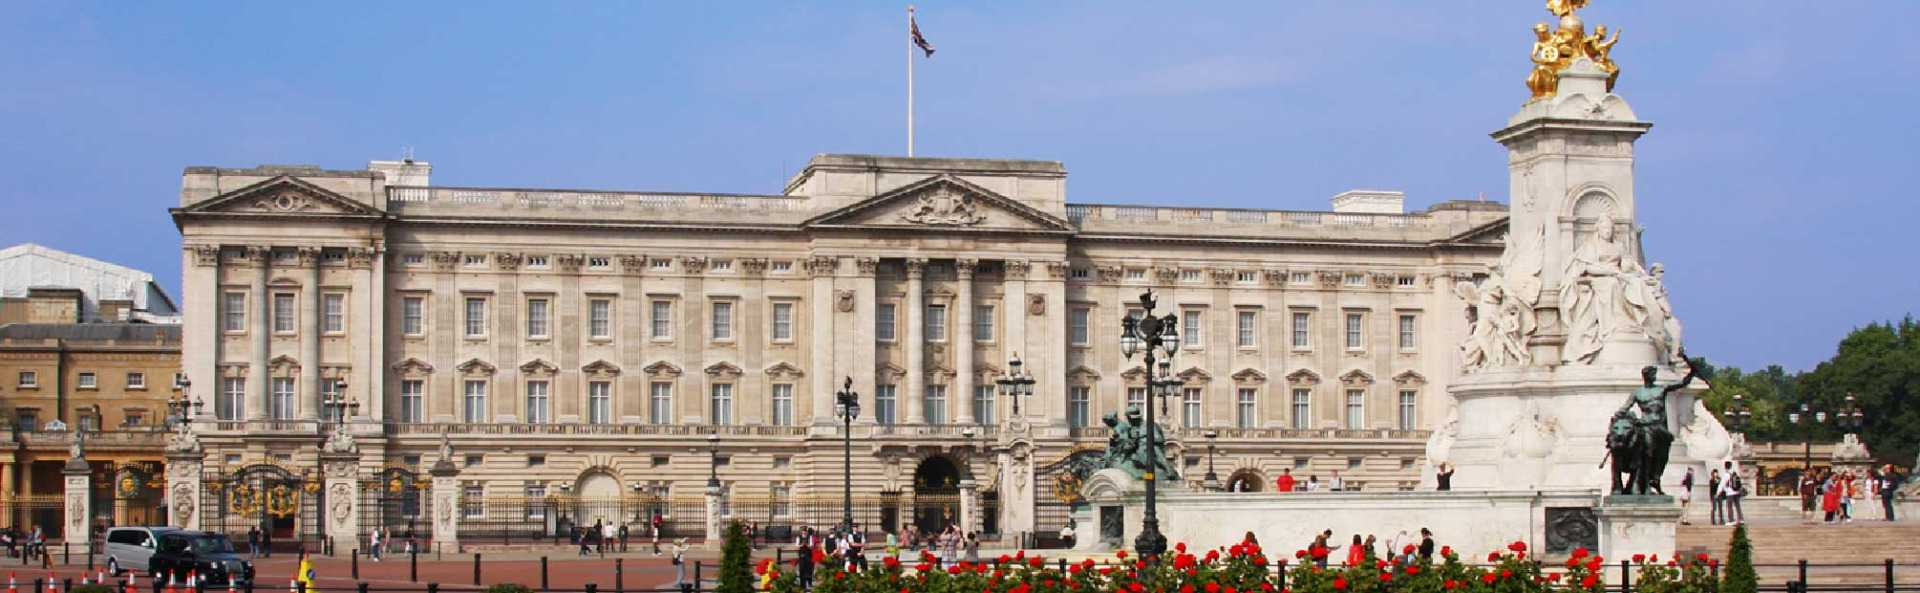 Buckingham Palace Outside Front View